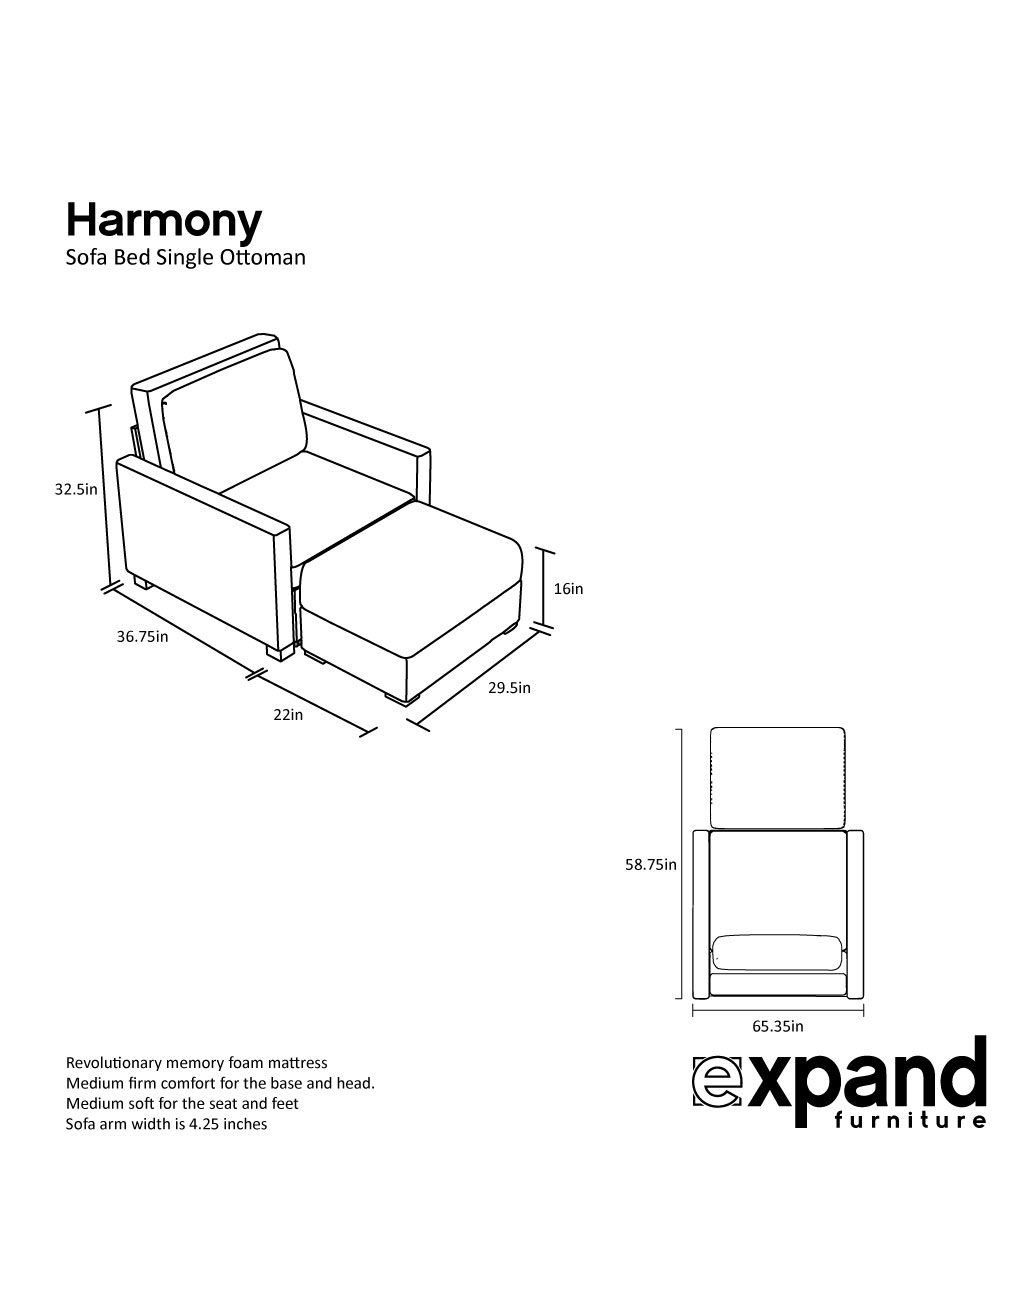 folding ottoman single sofa bed review modern furniture design harmony with memory foam expand tables smarter wall beds space savers